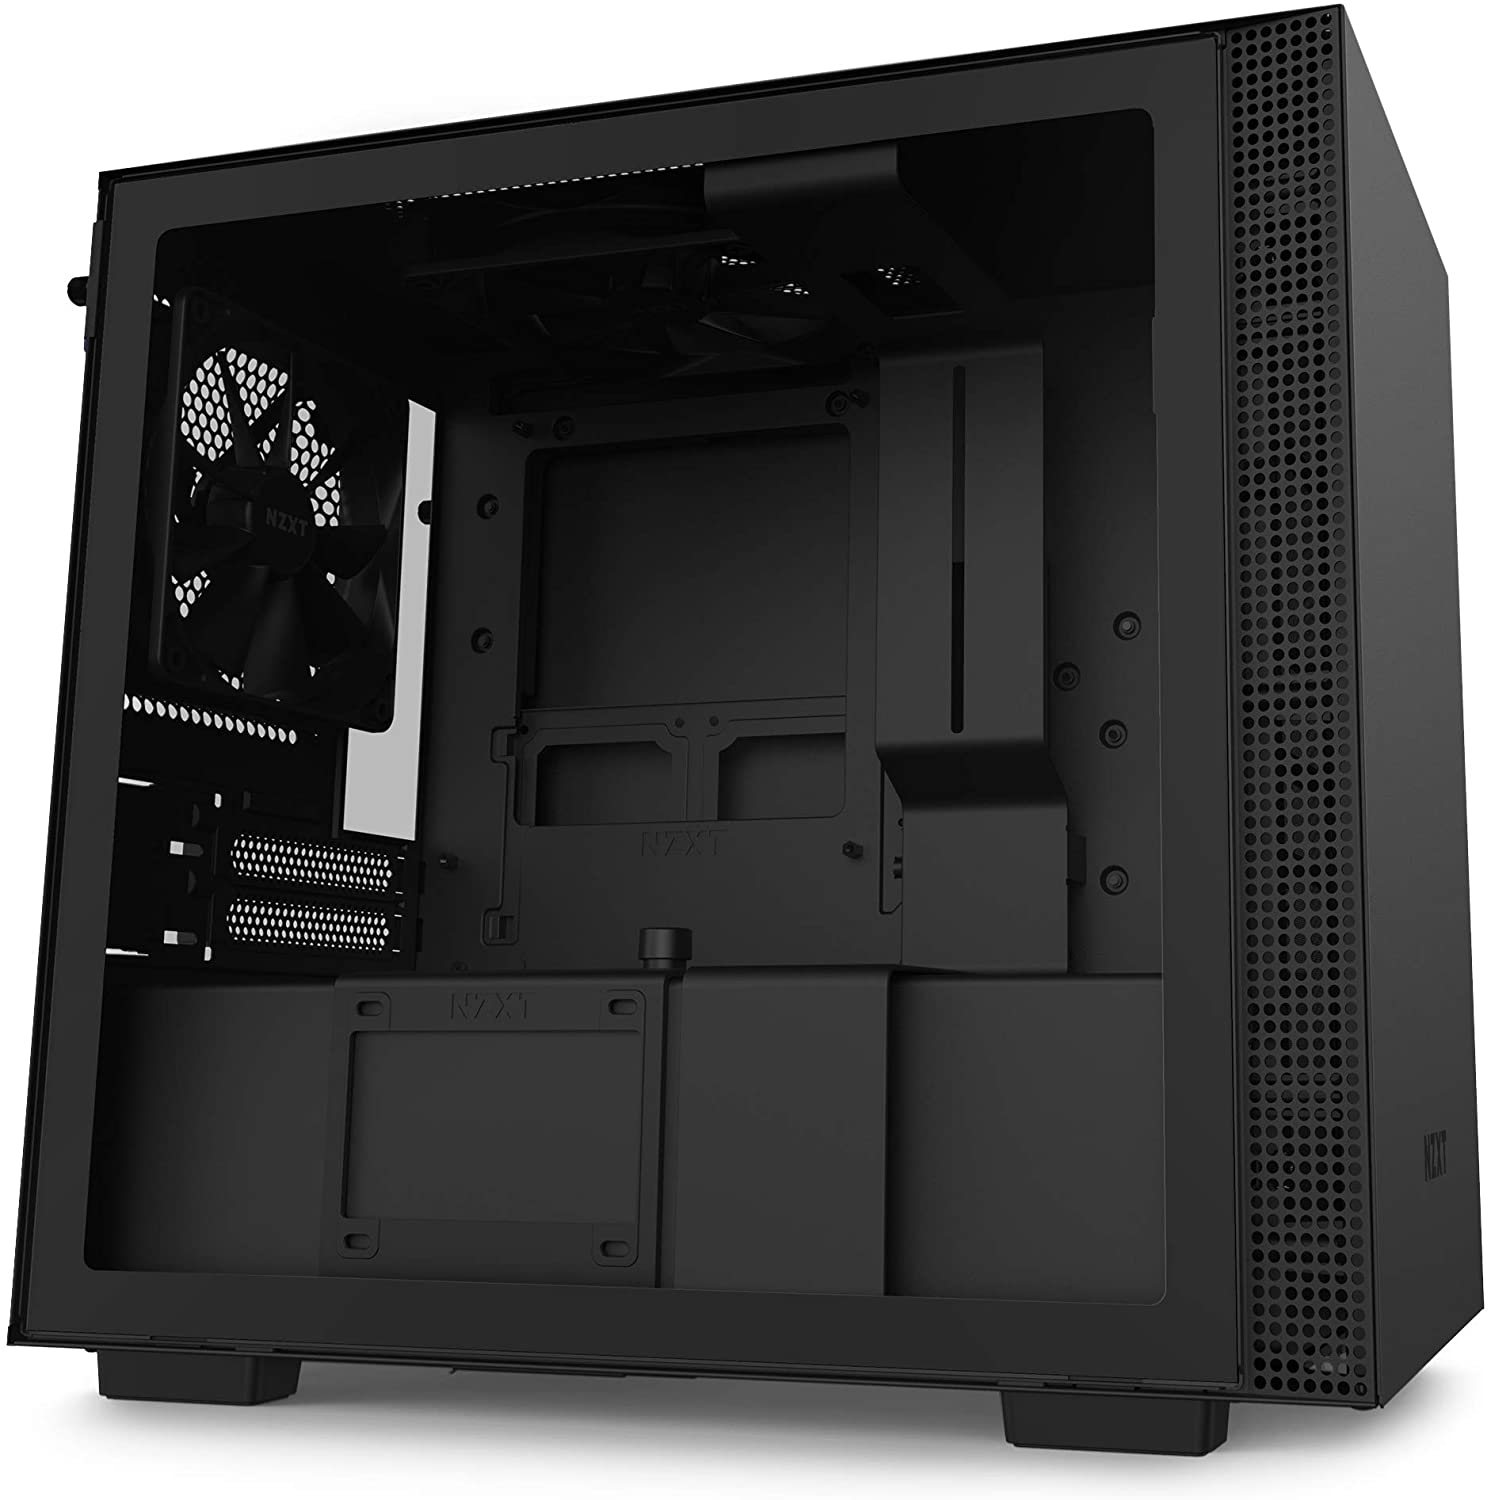 NZXT H210 Mini-ITX PC Gaming Case - Black